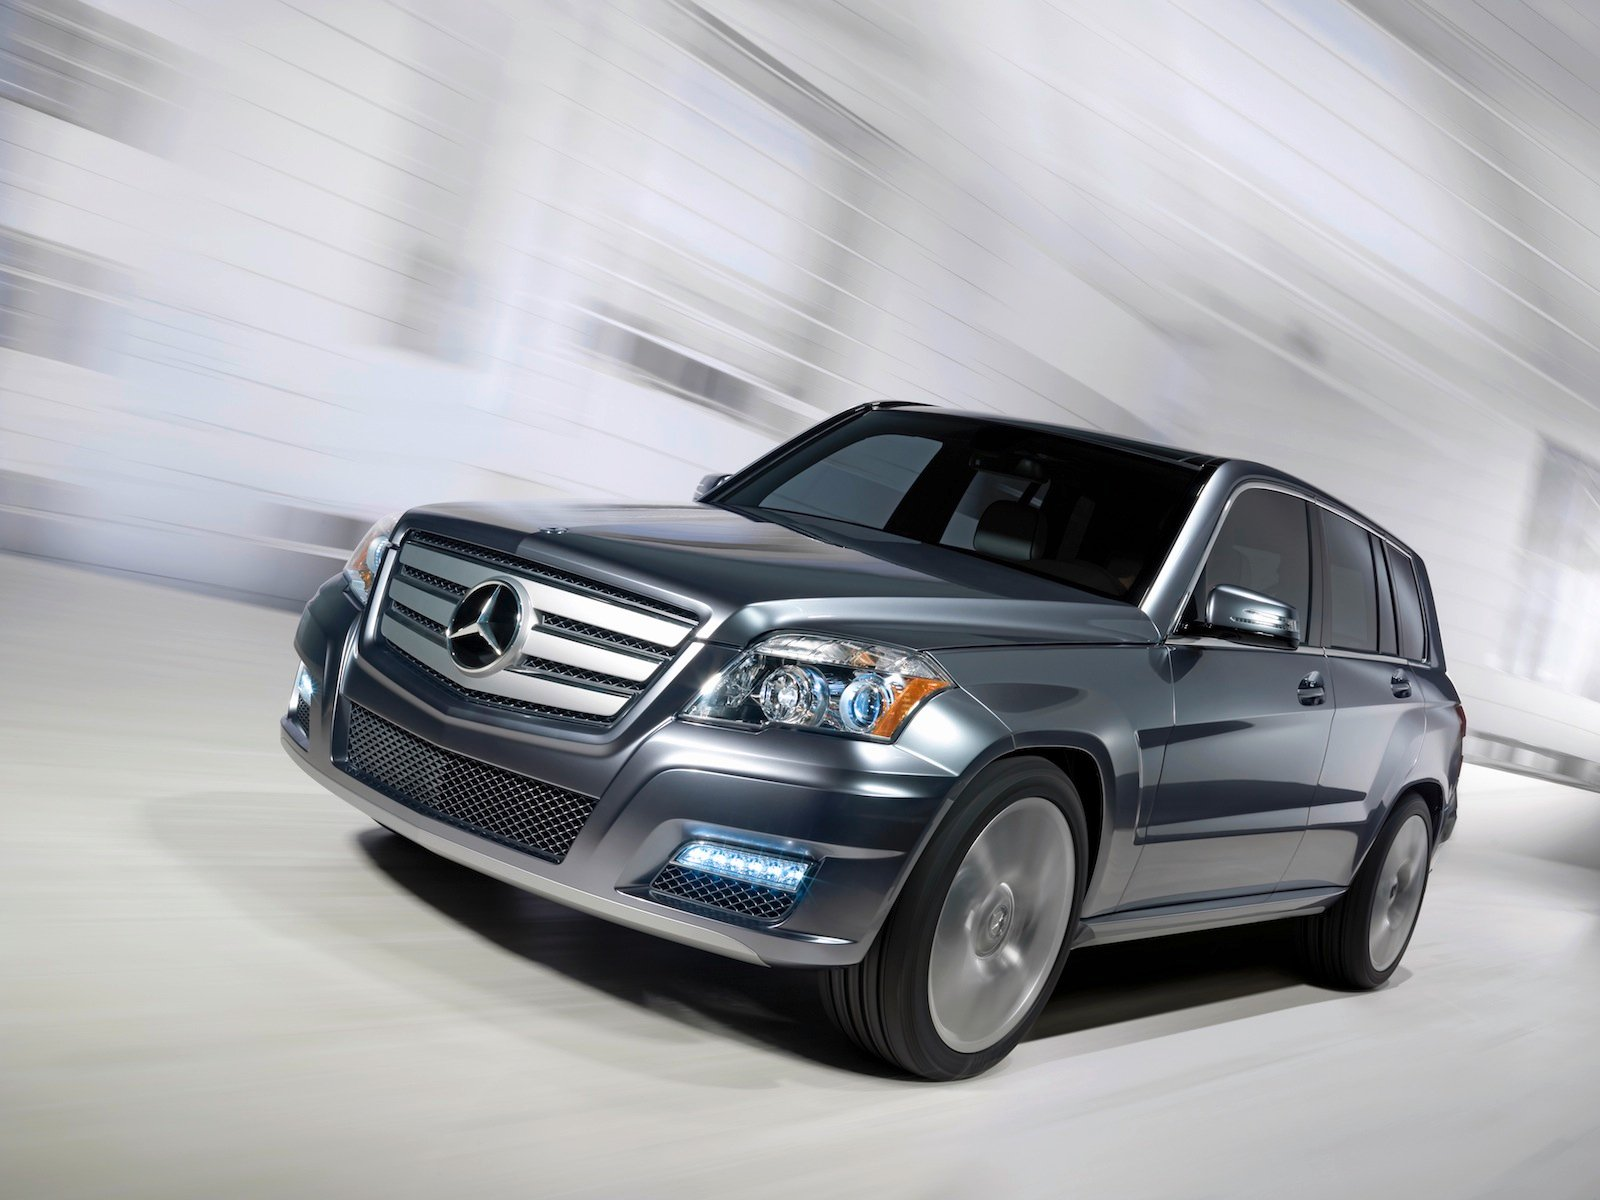 Glk Specs >> GLK-Class AMG version rejected - Photos (1 of 2)